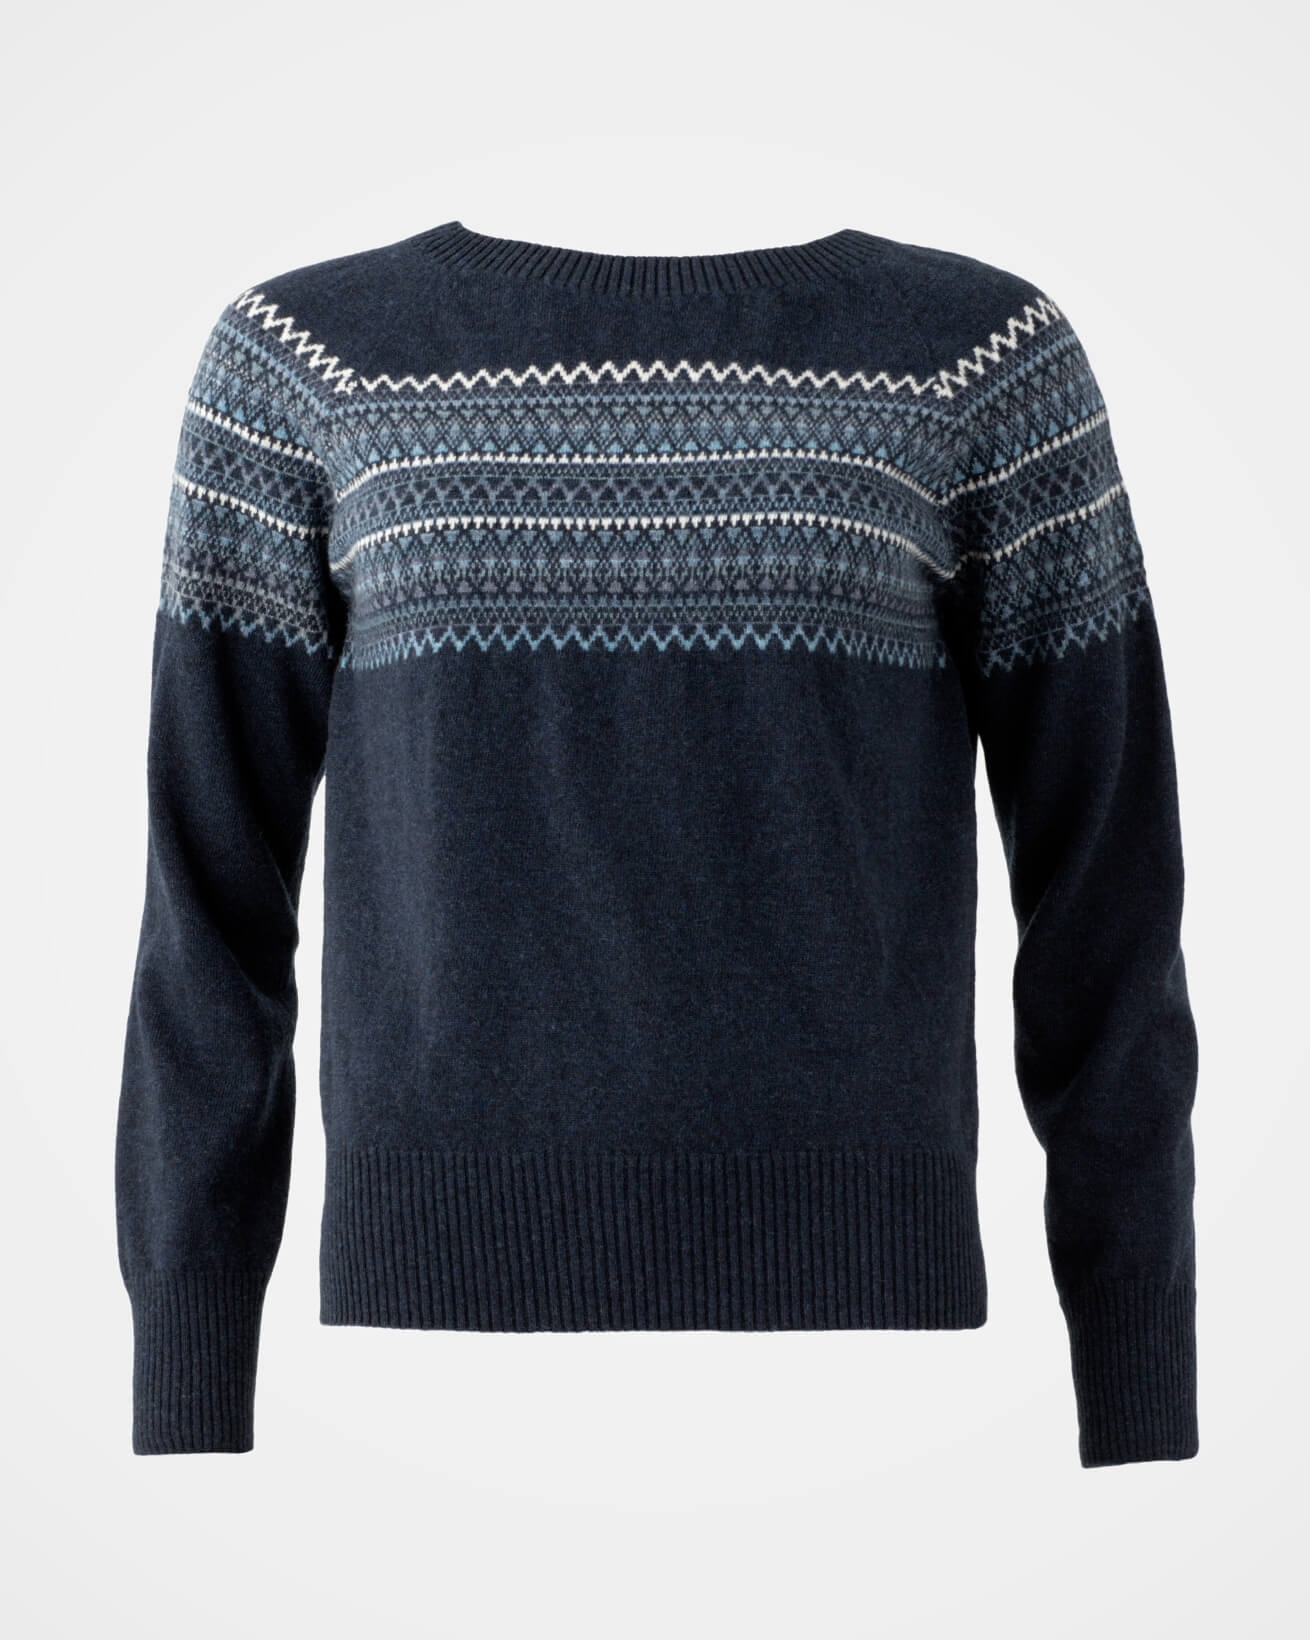 7591_supersoft-crew-jumper_navy-fairisle_front_web.jpg